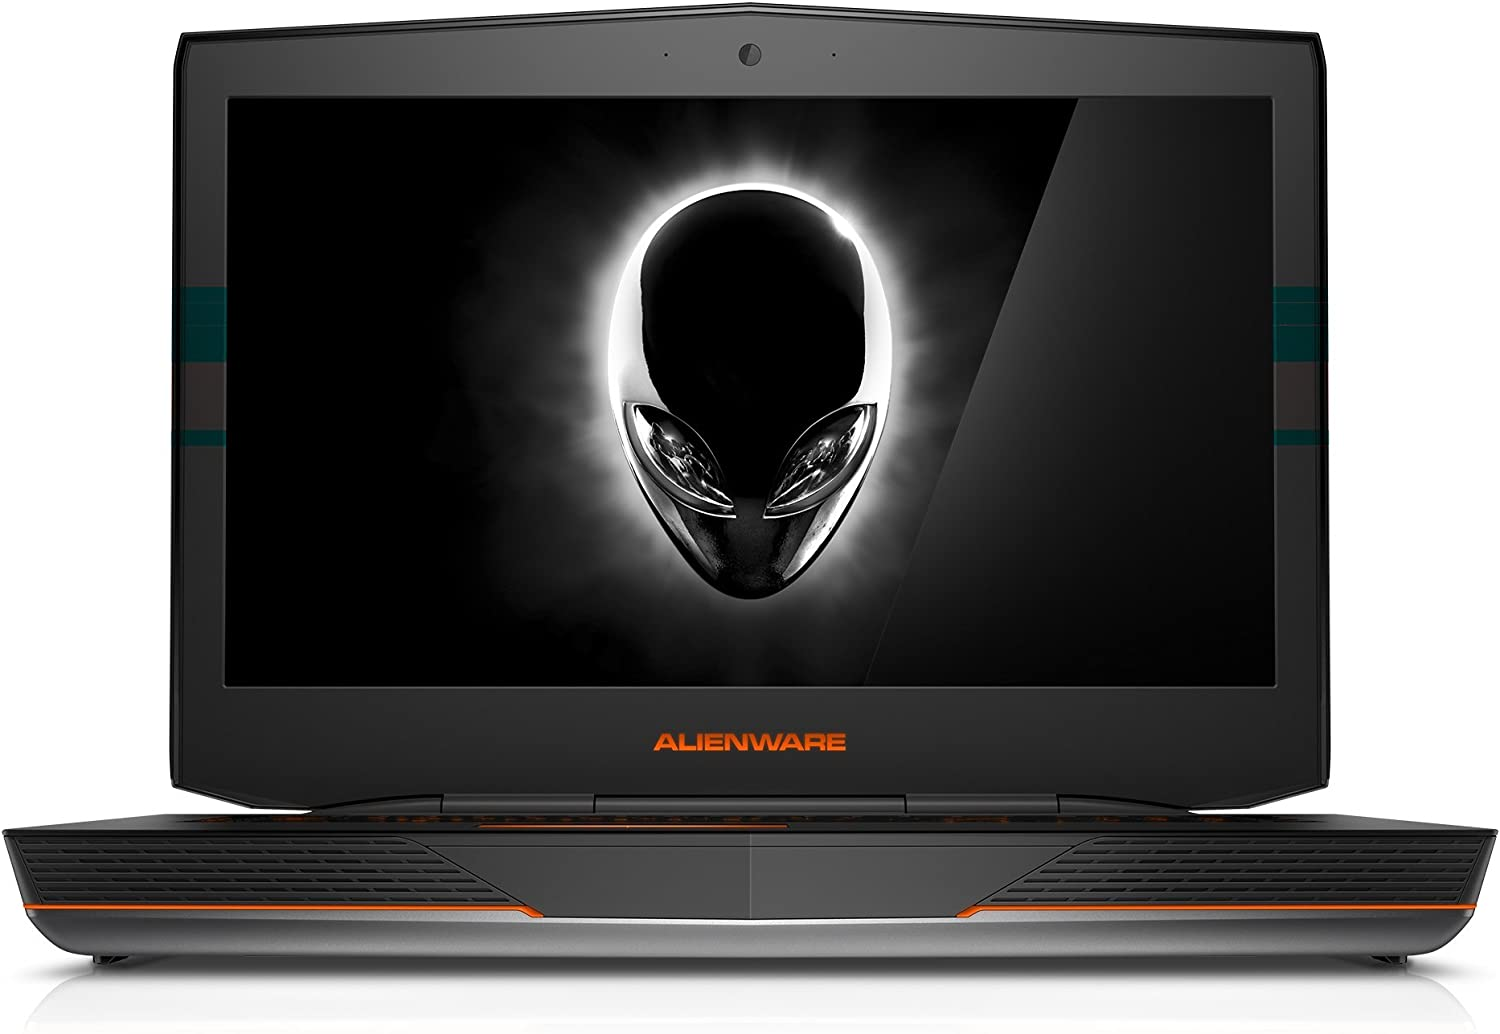 Alienware ALW18-2001sLV 18-Inch Laptop (3.4 GHz Intel Core i7-4700MQ Processor, 8GB DDR3L, 750GB HDD, Dual NVIDIA GeForce GTX 765M